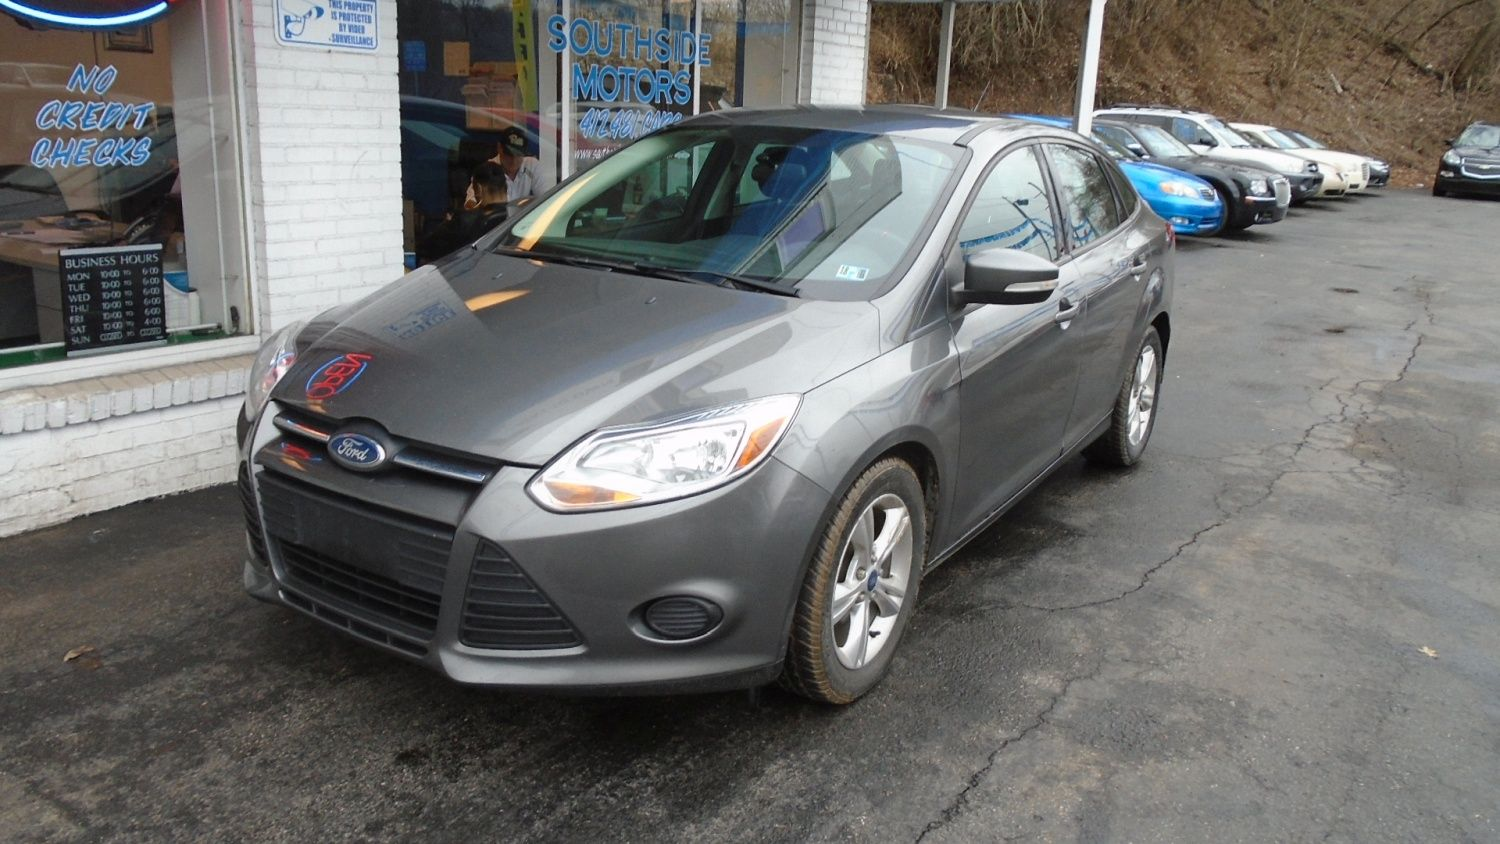 2013 ford focus se sirius alloys and great gas mileage  [ 1500 x 844 Pixel ]